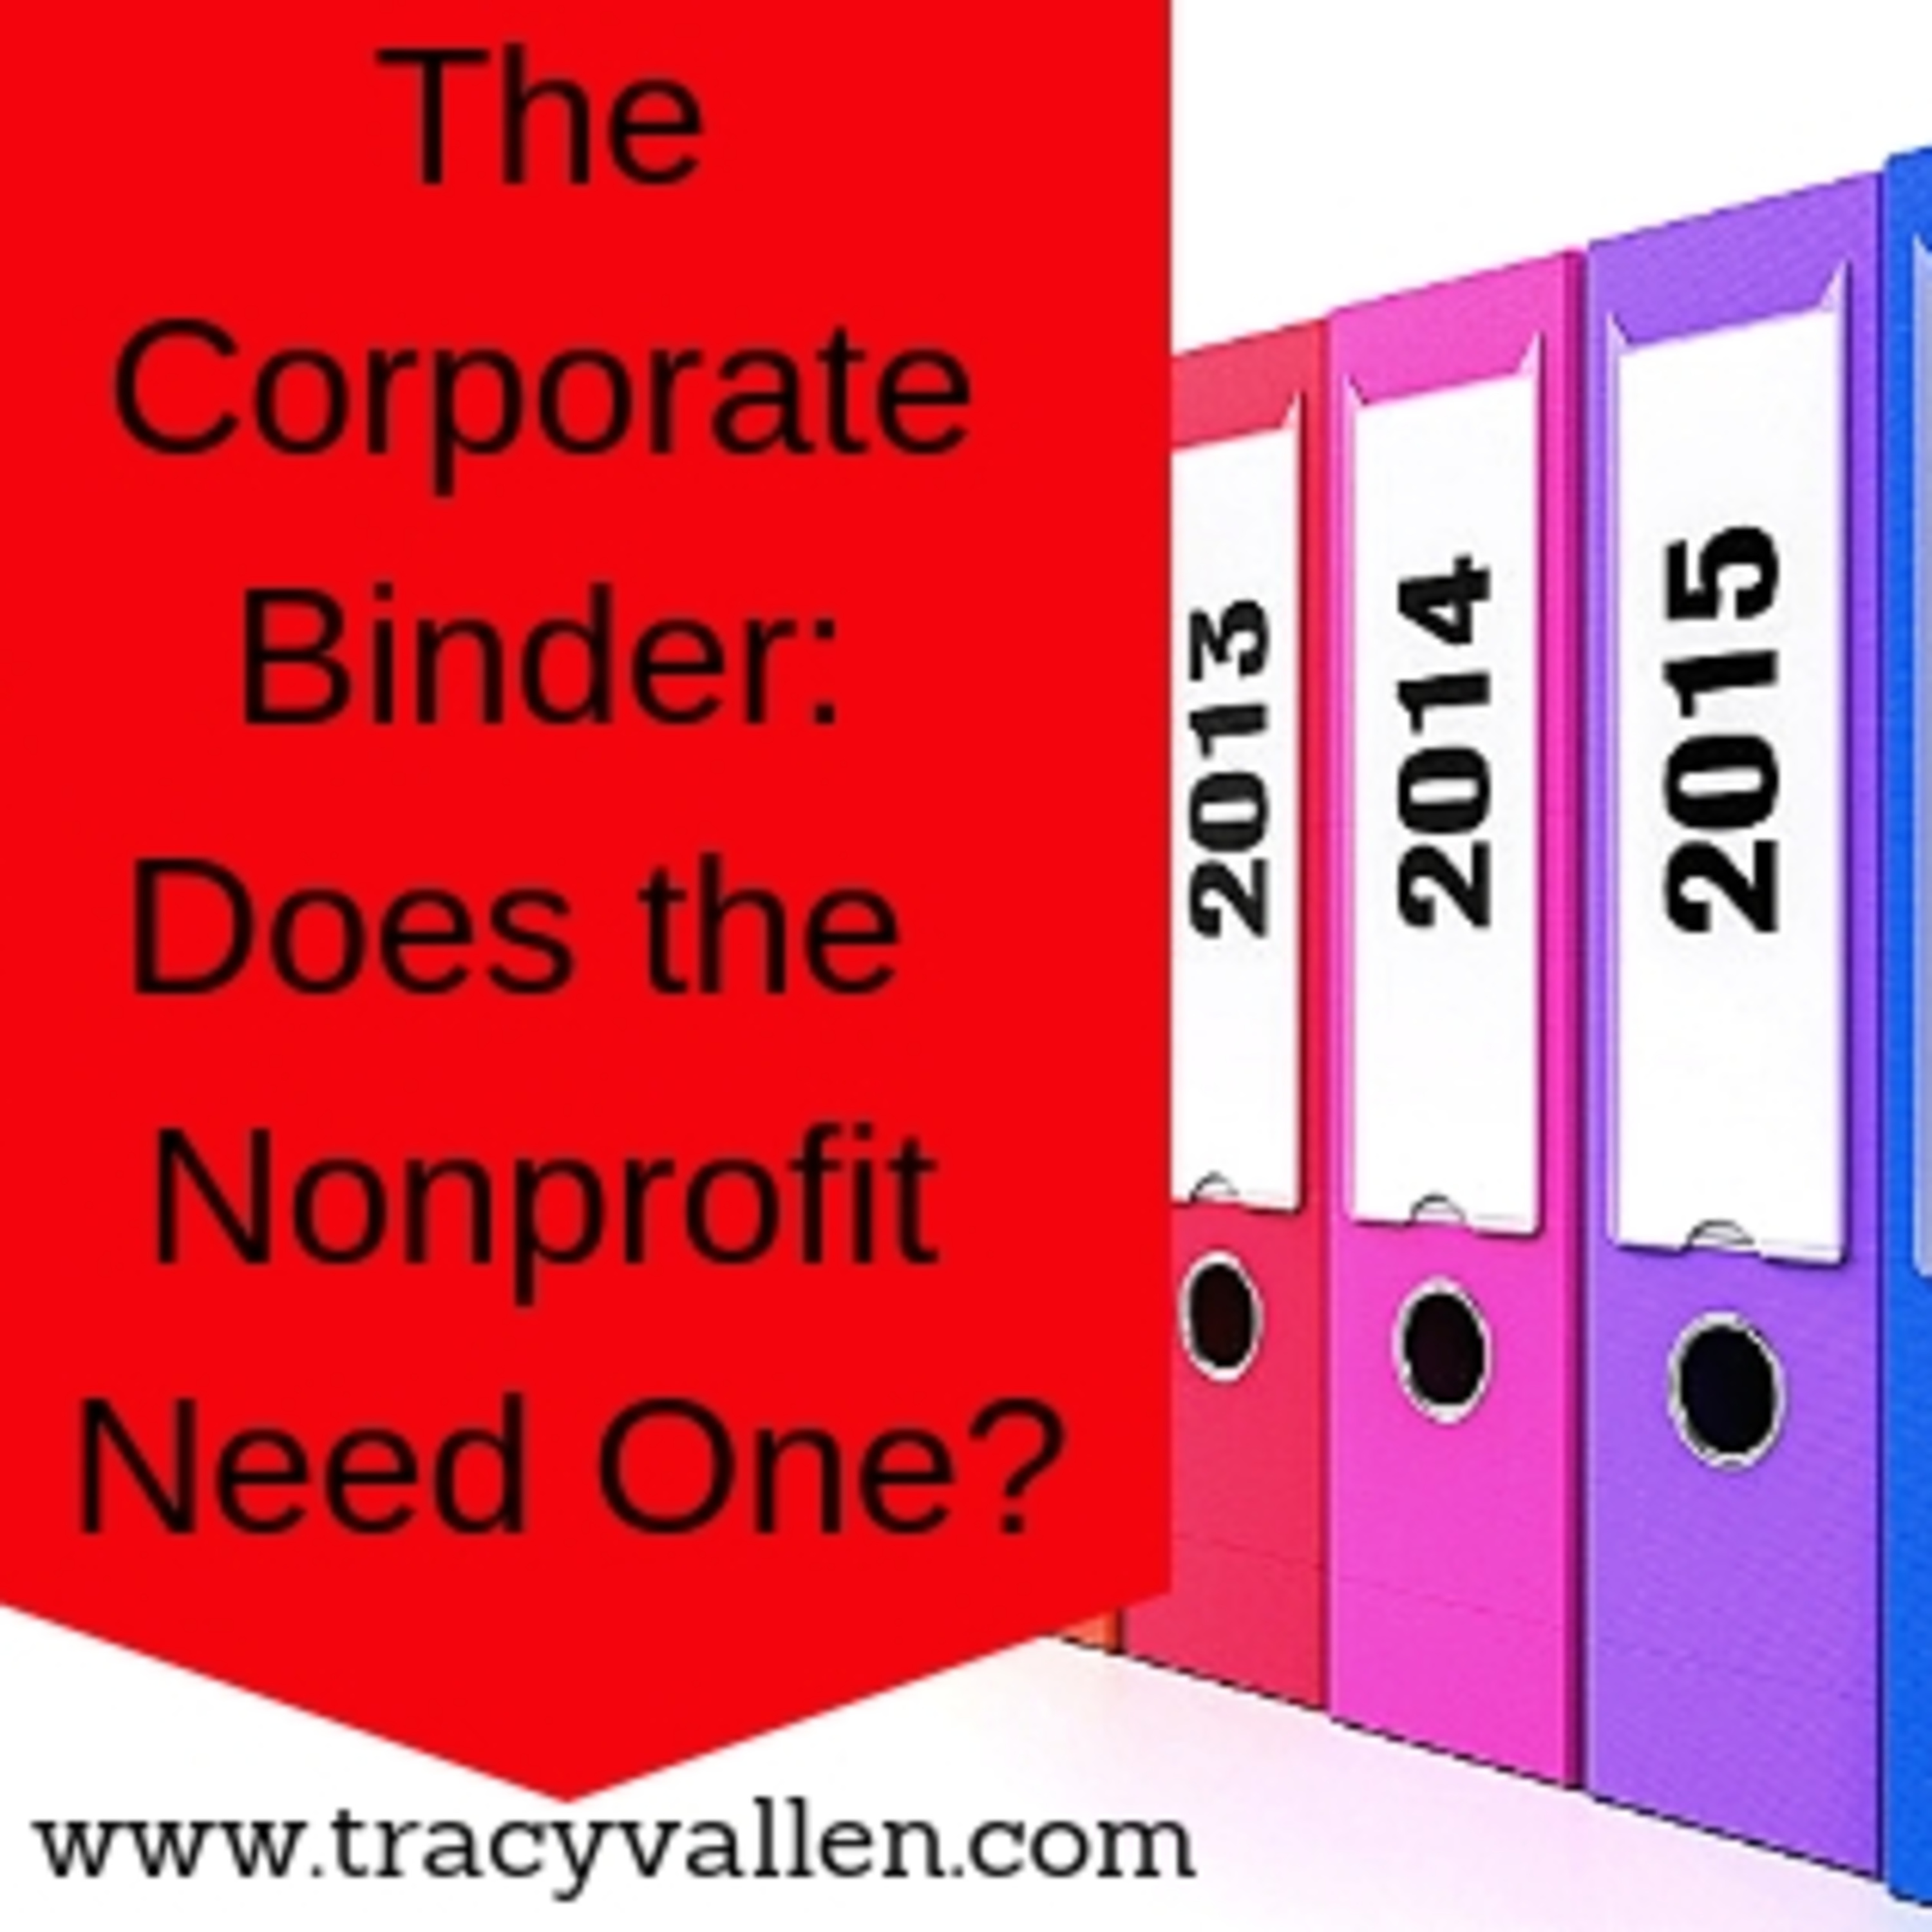 S1E31 - The Corporate Binder: What is it and Does the Nonprofit Need One?